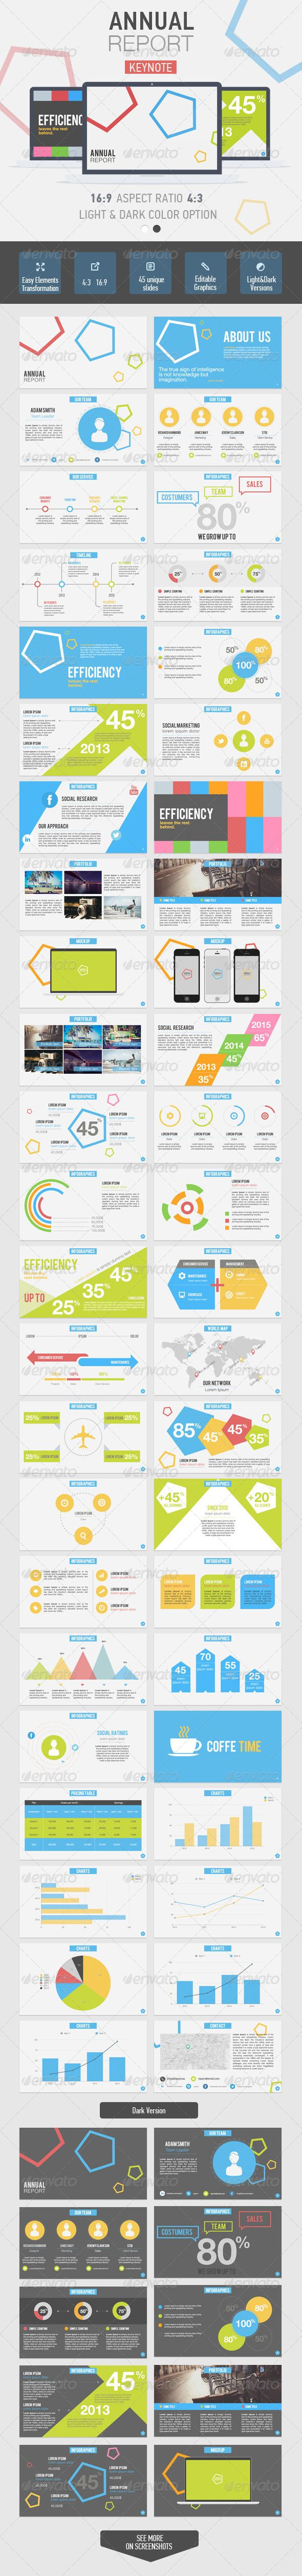 Annual Report Keynote Template | Keynote theme / template